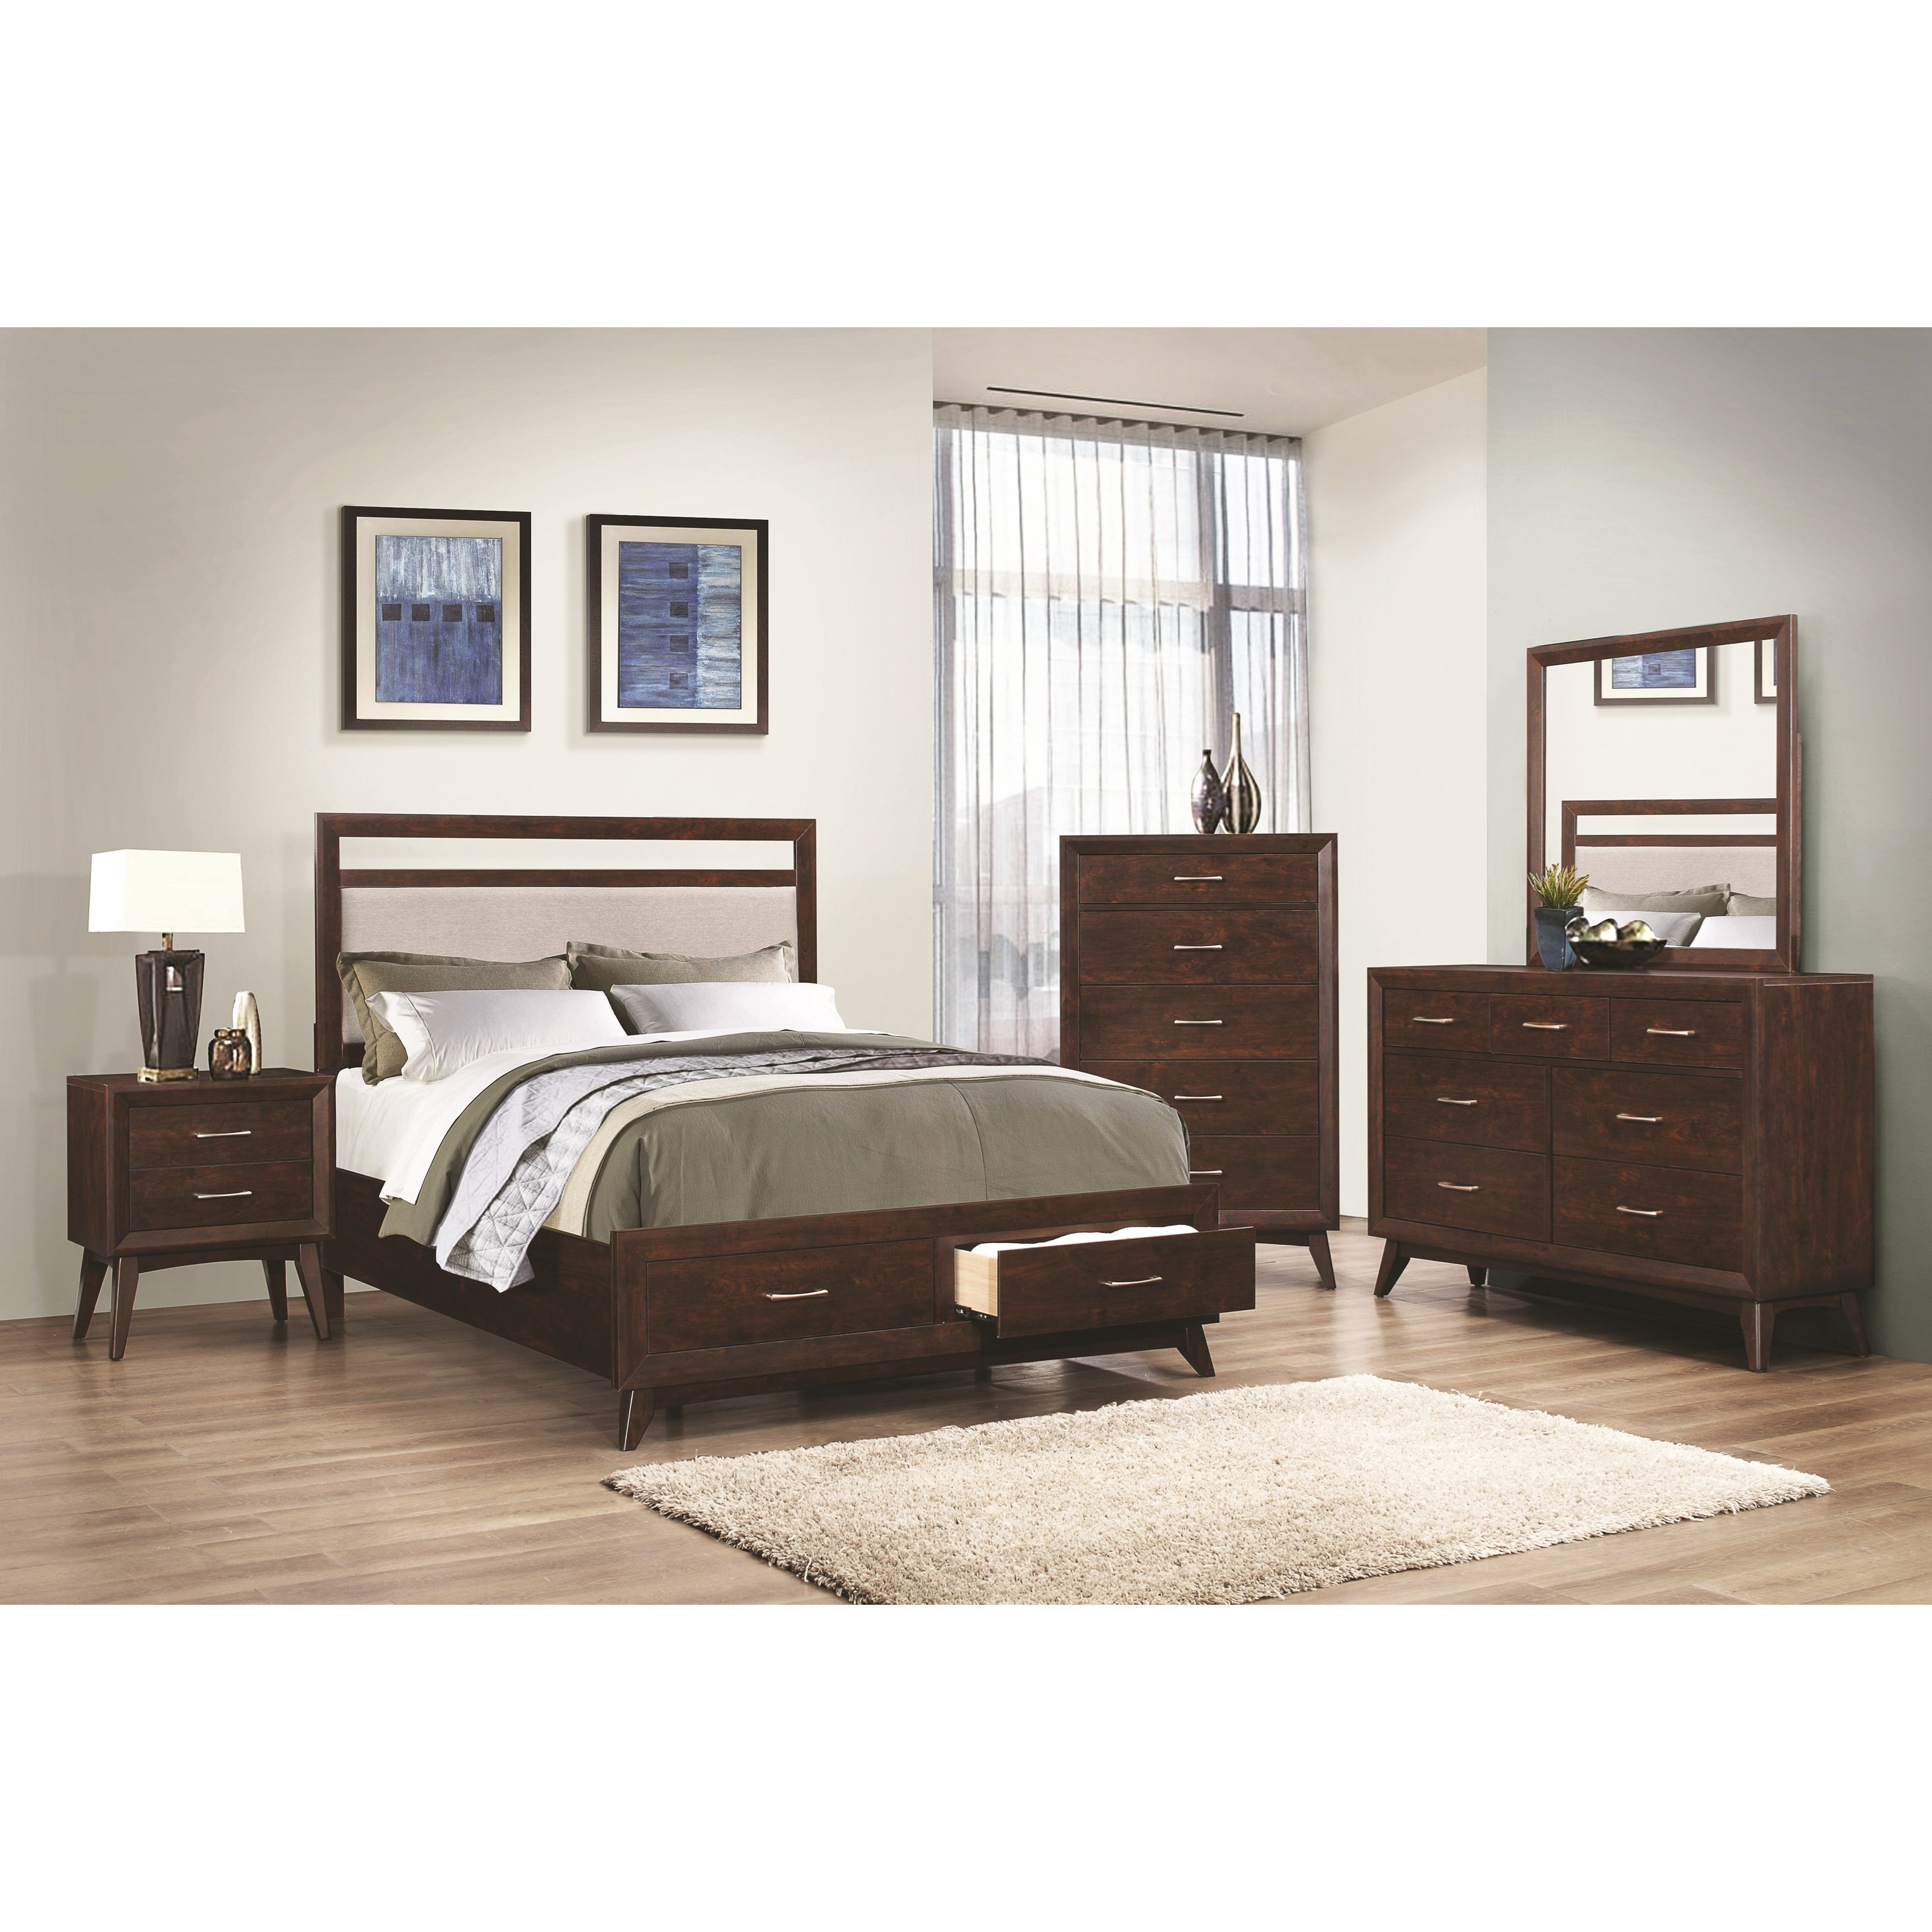 Coaster carrington california king bedroom group del sol for Bedroom furniture groups